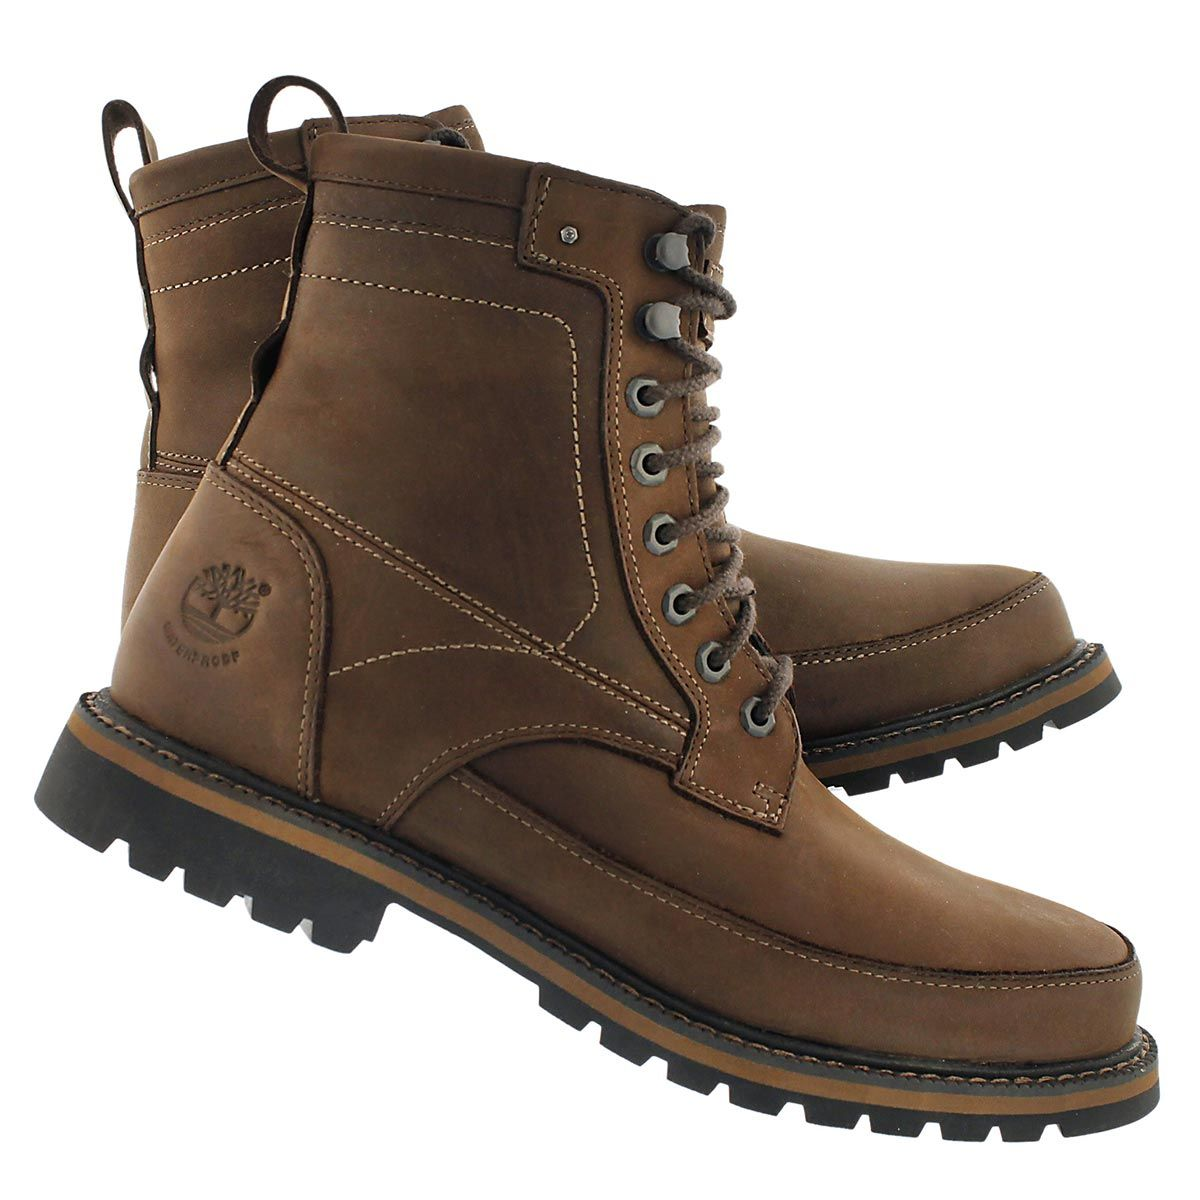 Timberland Men's CHESTNUT RIDGE dark brown waterproof boots TB05535A242